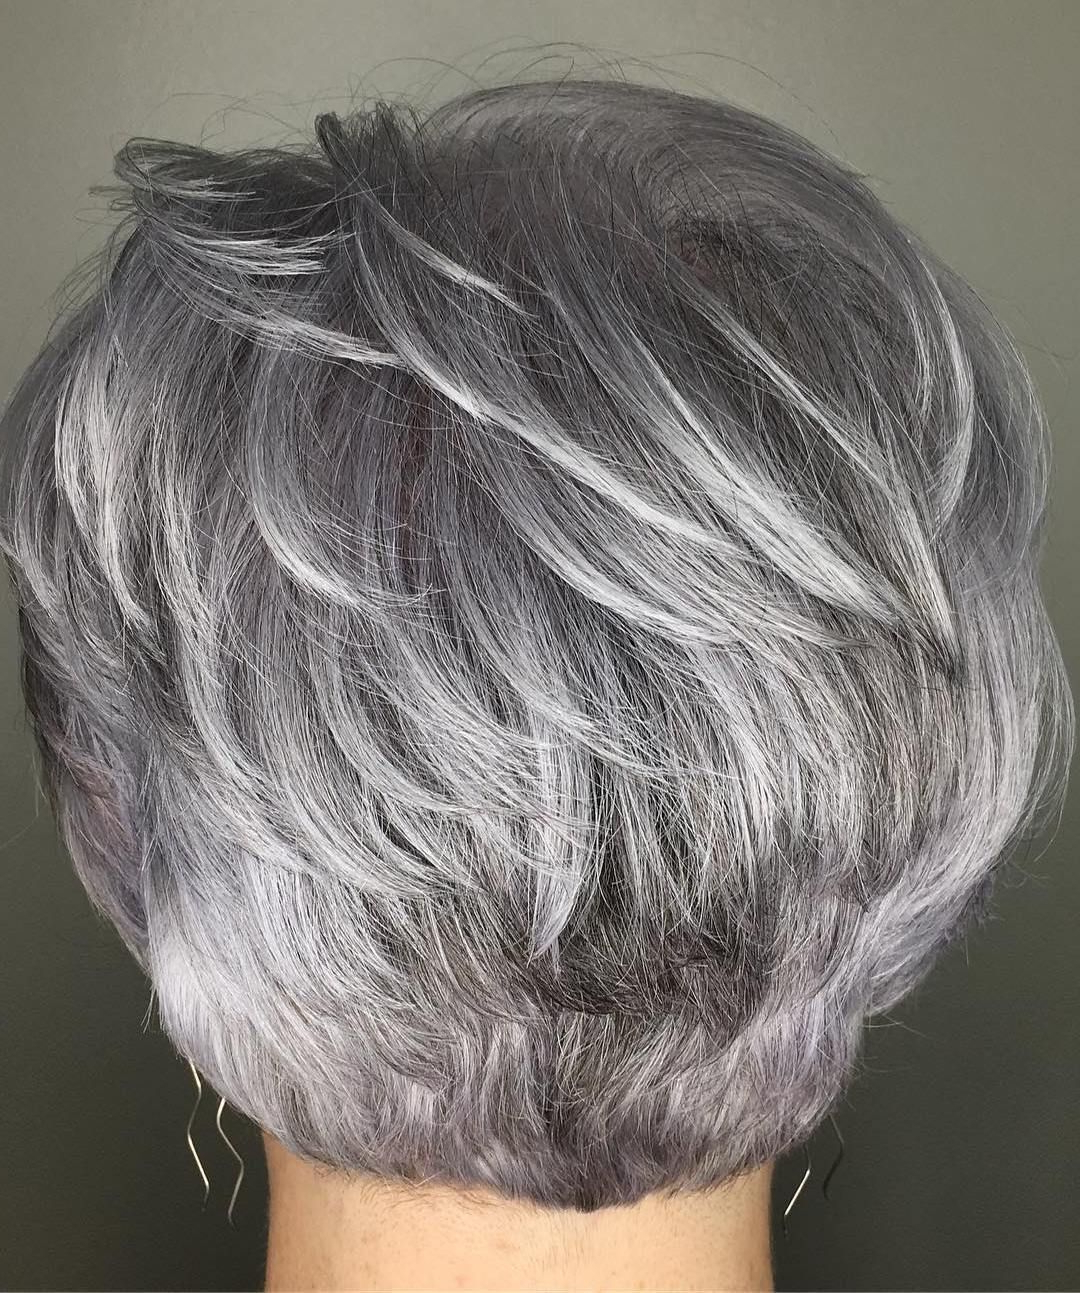 60 Gorgeous Gray Hair Styles In 2018 | Hairstyles | Pinterest | Hair Inside Airy Gray Pixie Hairstyles With Lots Of Layers (View 12 of 20)